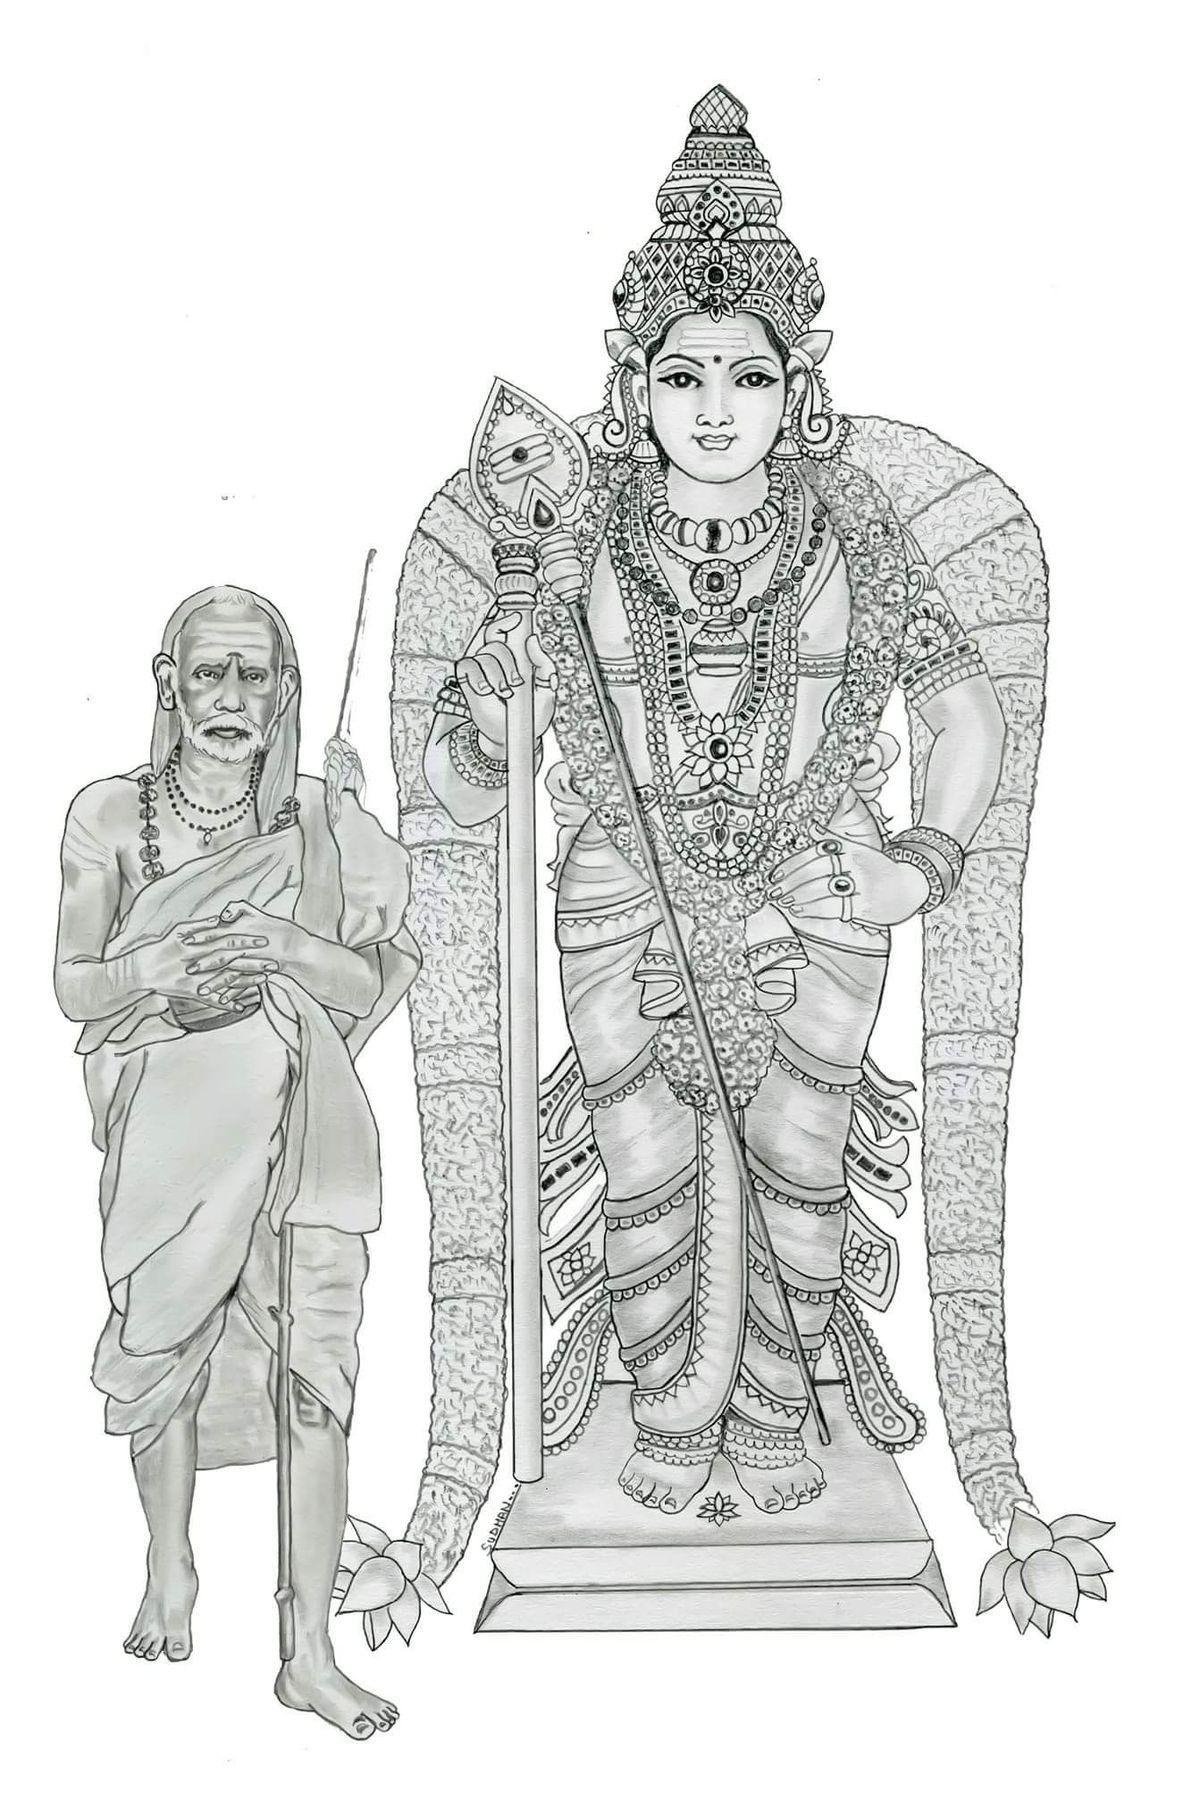 Kanchi kamakshi gods in 2019 lord murugan hindu art lord